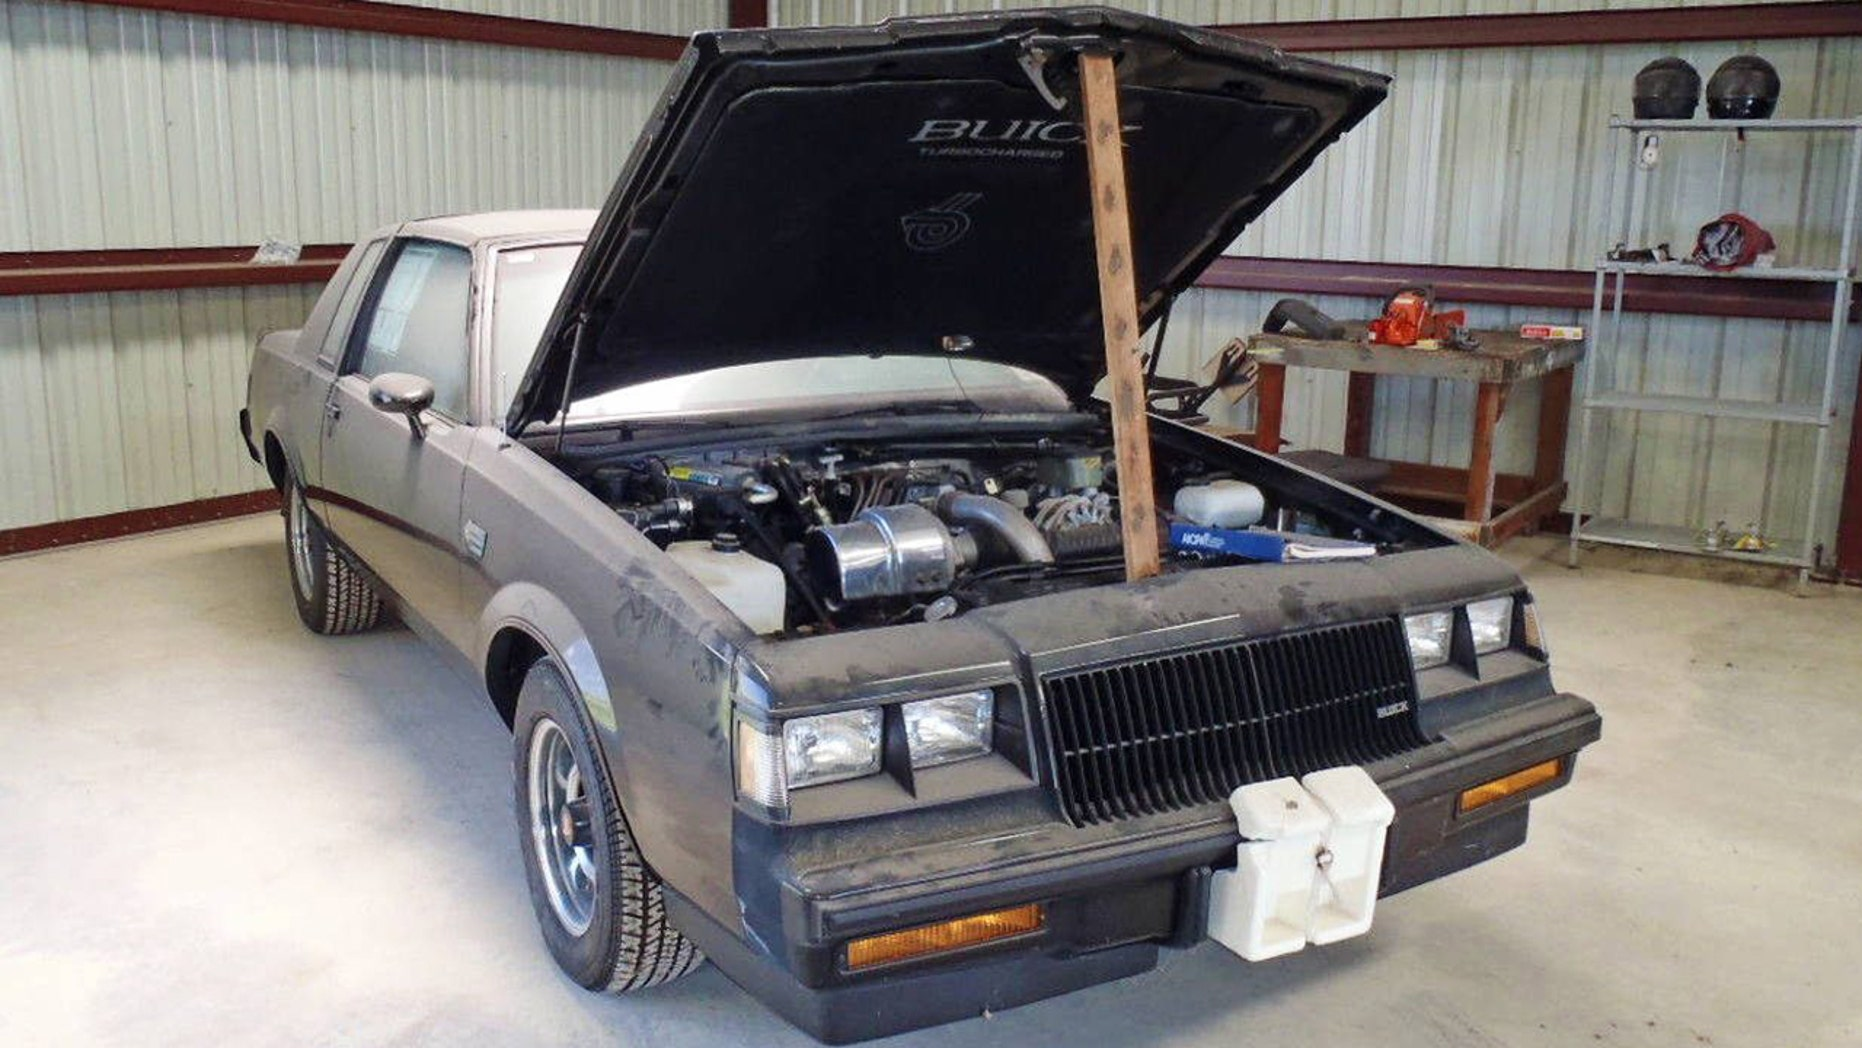 Time capsule 1987 Buick Grand National being auctioned on Ebay | Fox ...